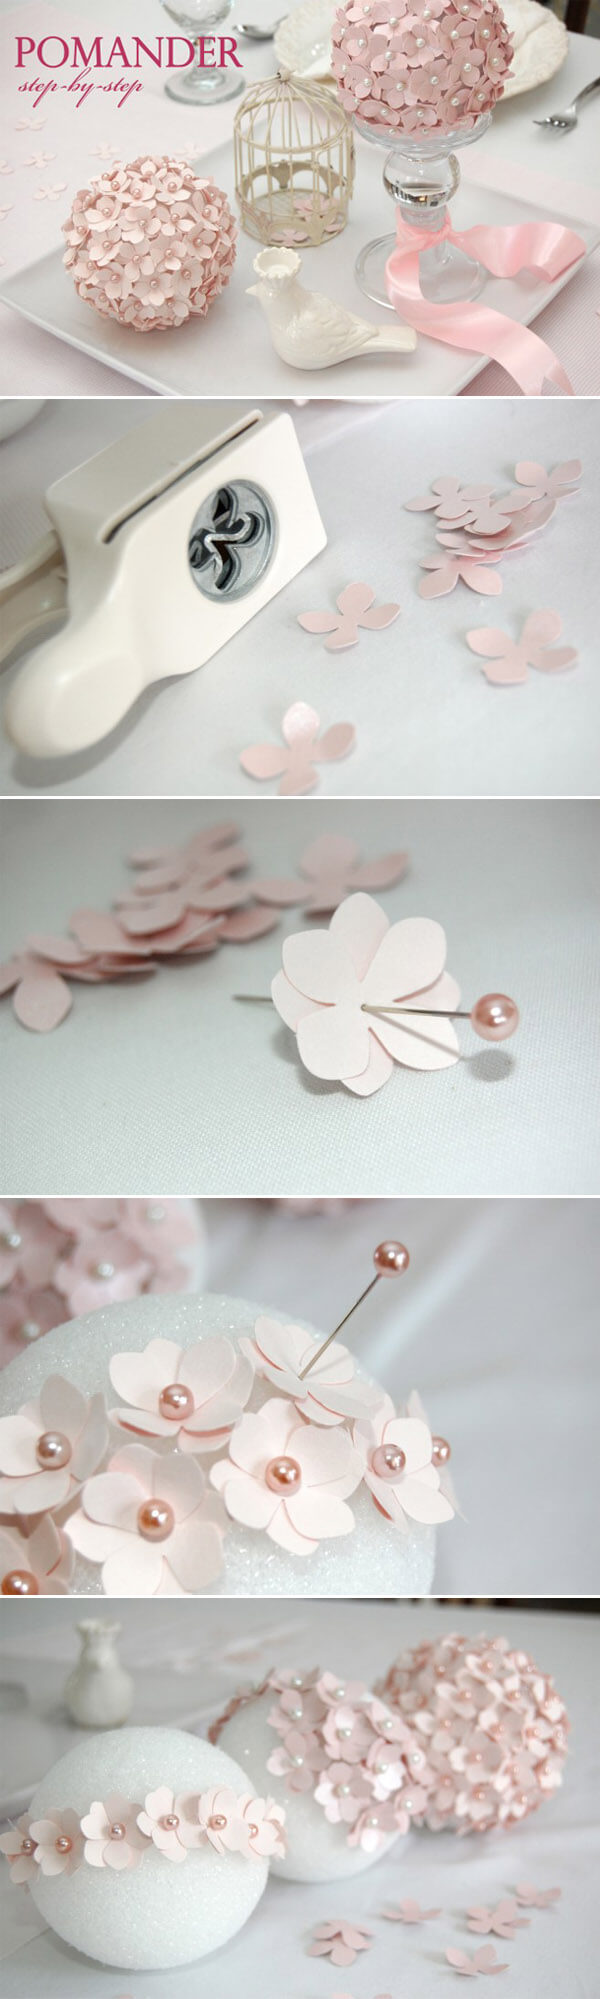 paper decor crafts ideas 9